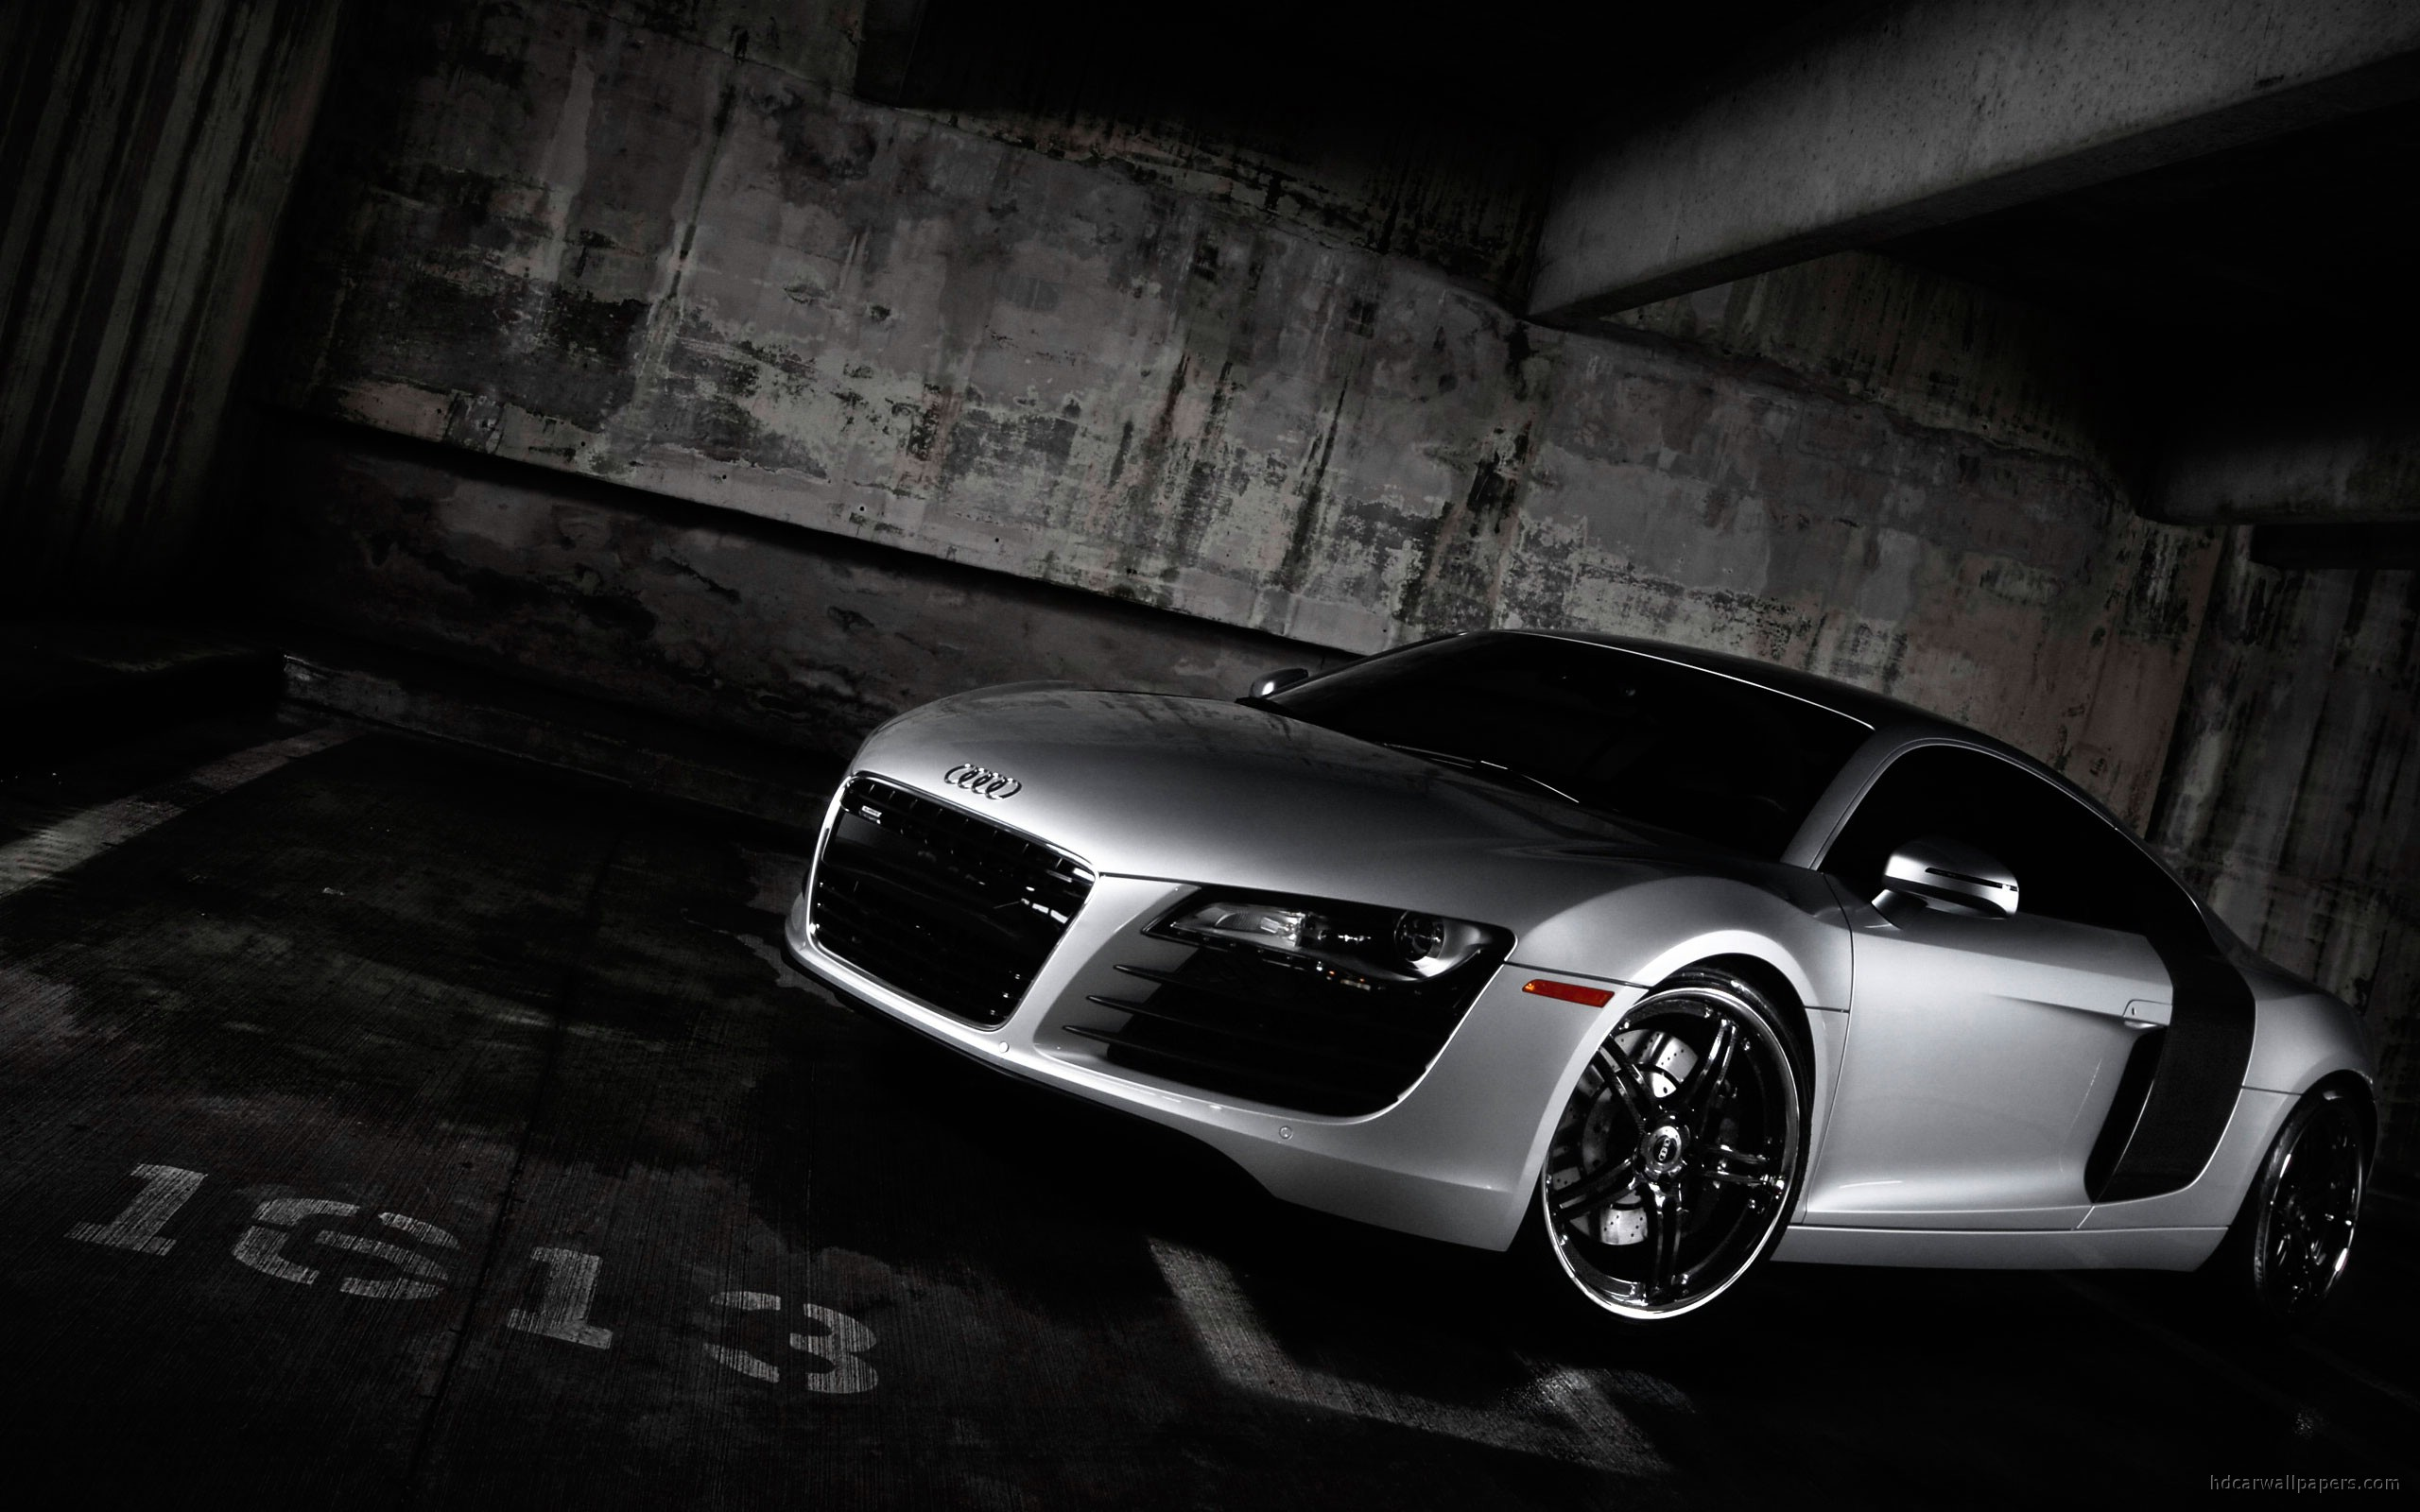 Audi R8 HD Widescreen Wallpaper | HD Car Wallpapers